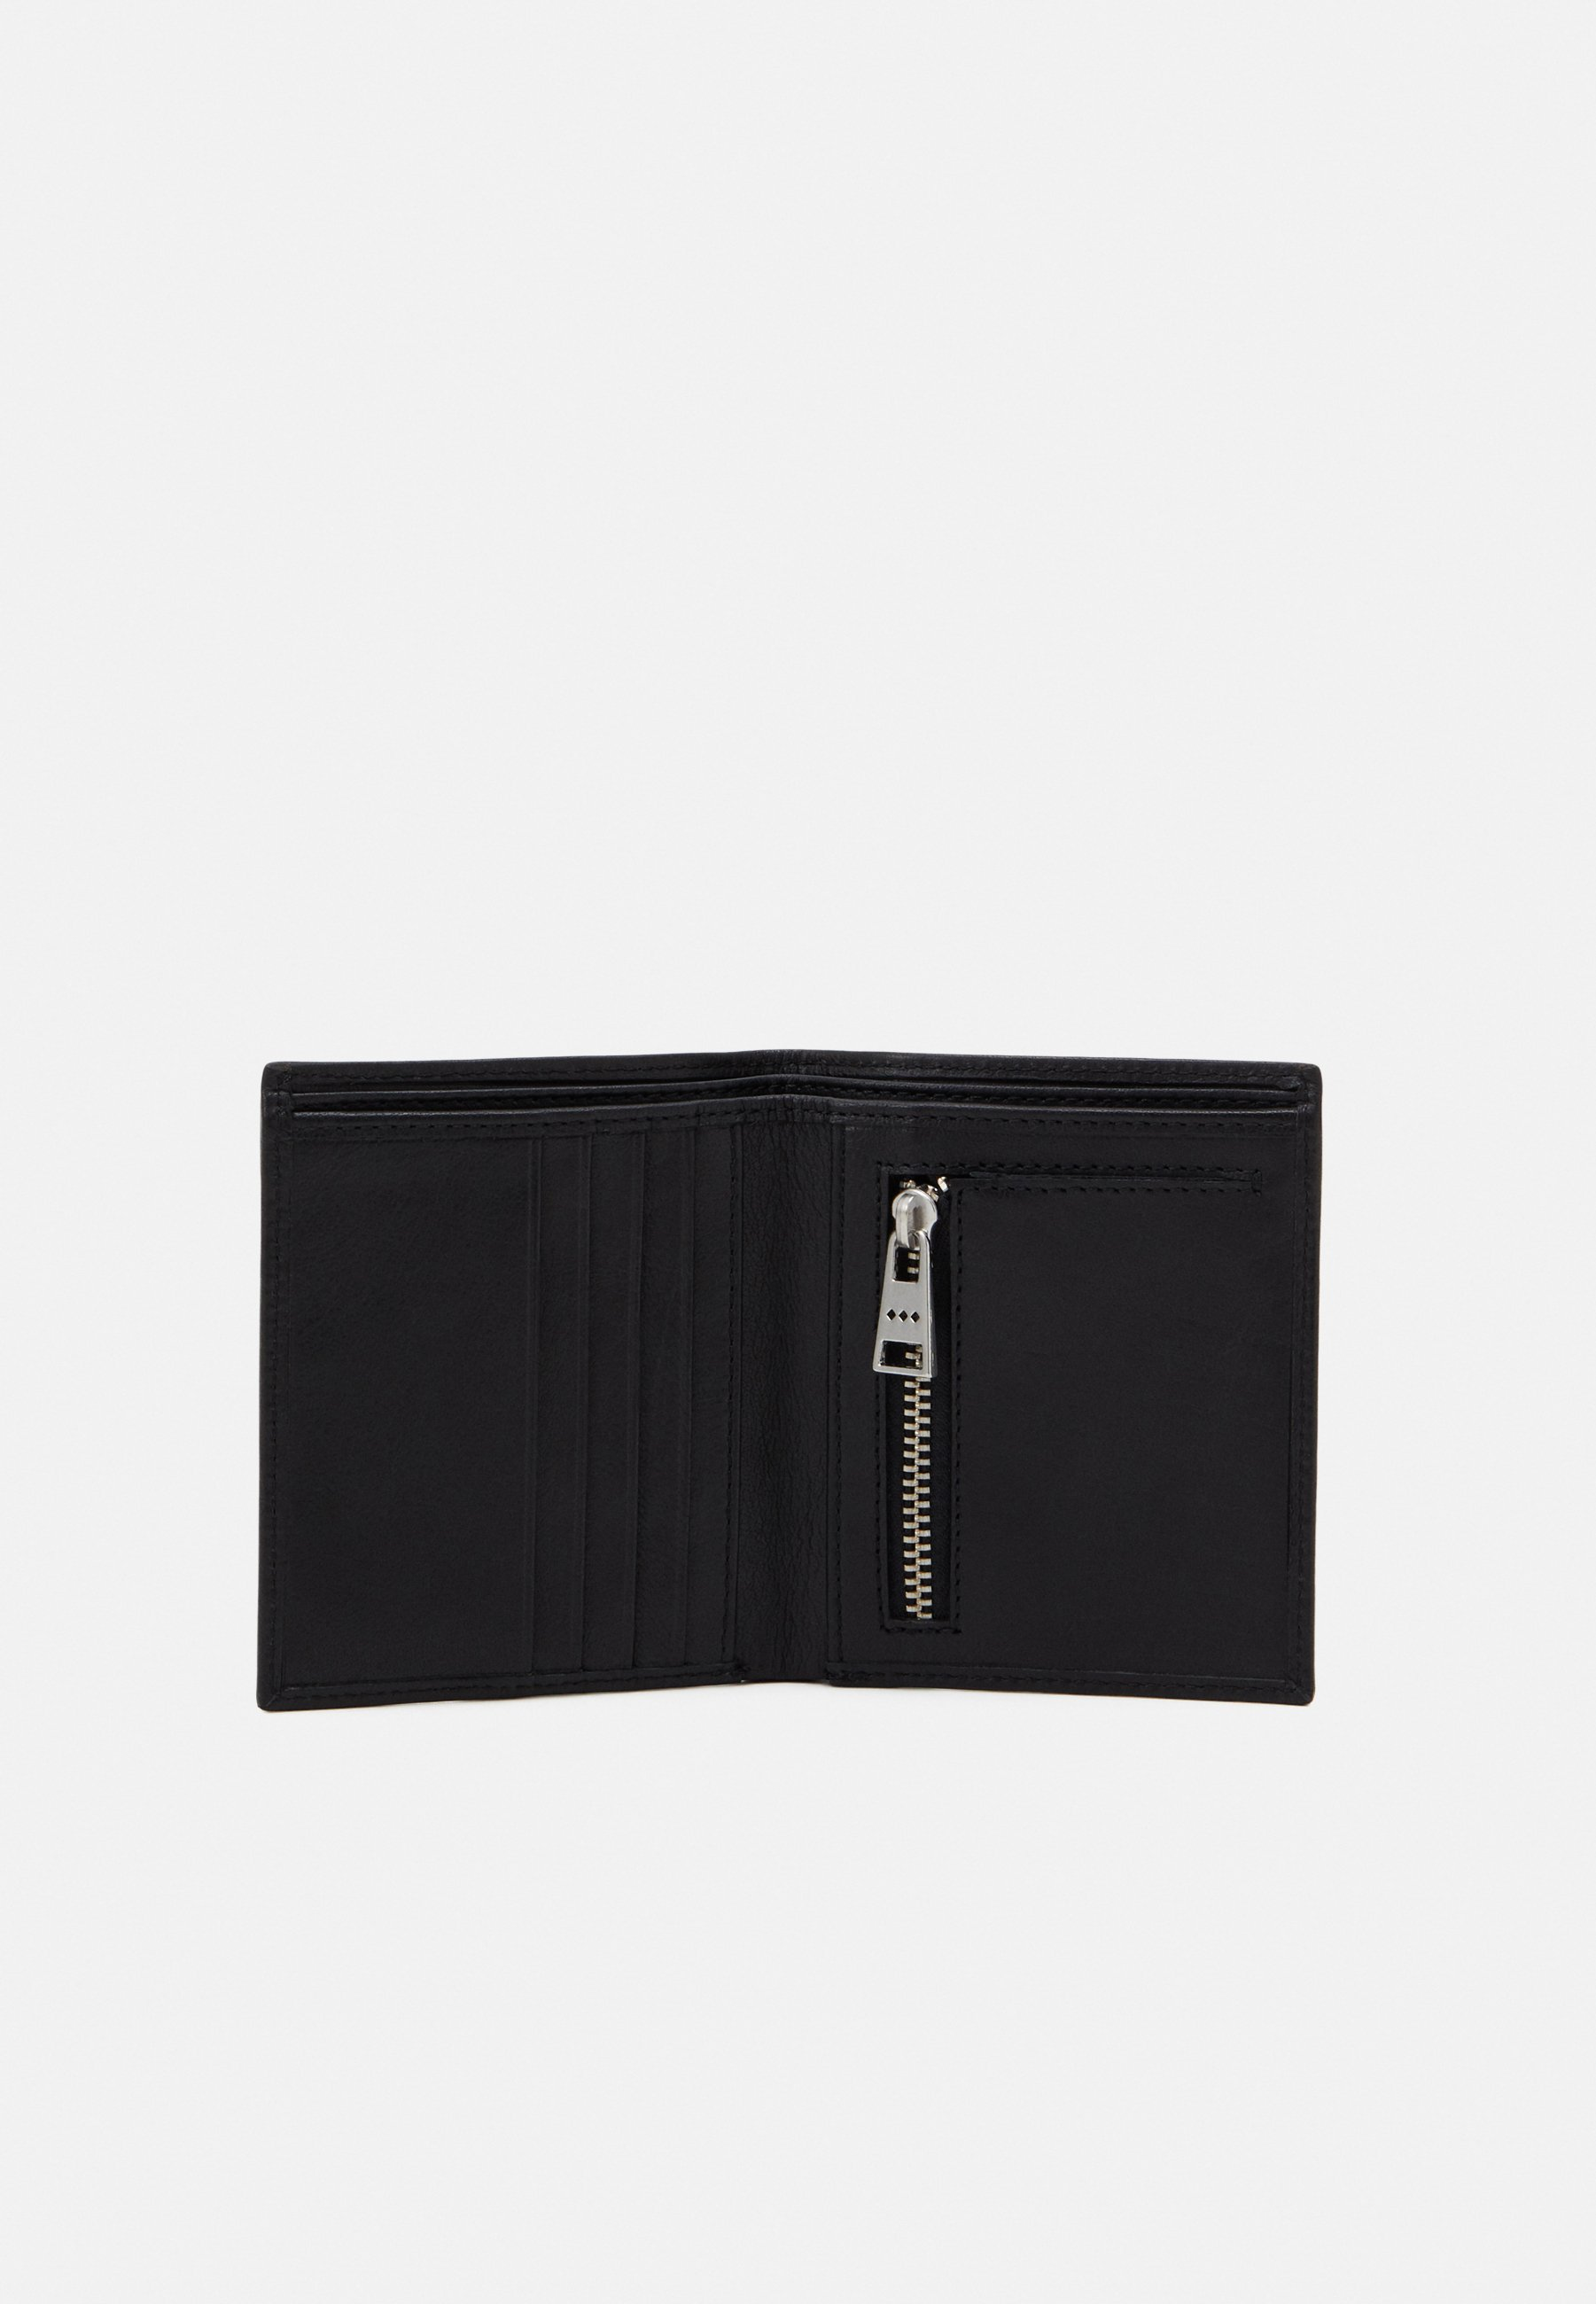 Royal RepubliQ DYNAMO WALLET - Geldbörse - black/schwarz - Herrentaschen 6Ffmb